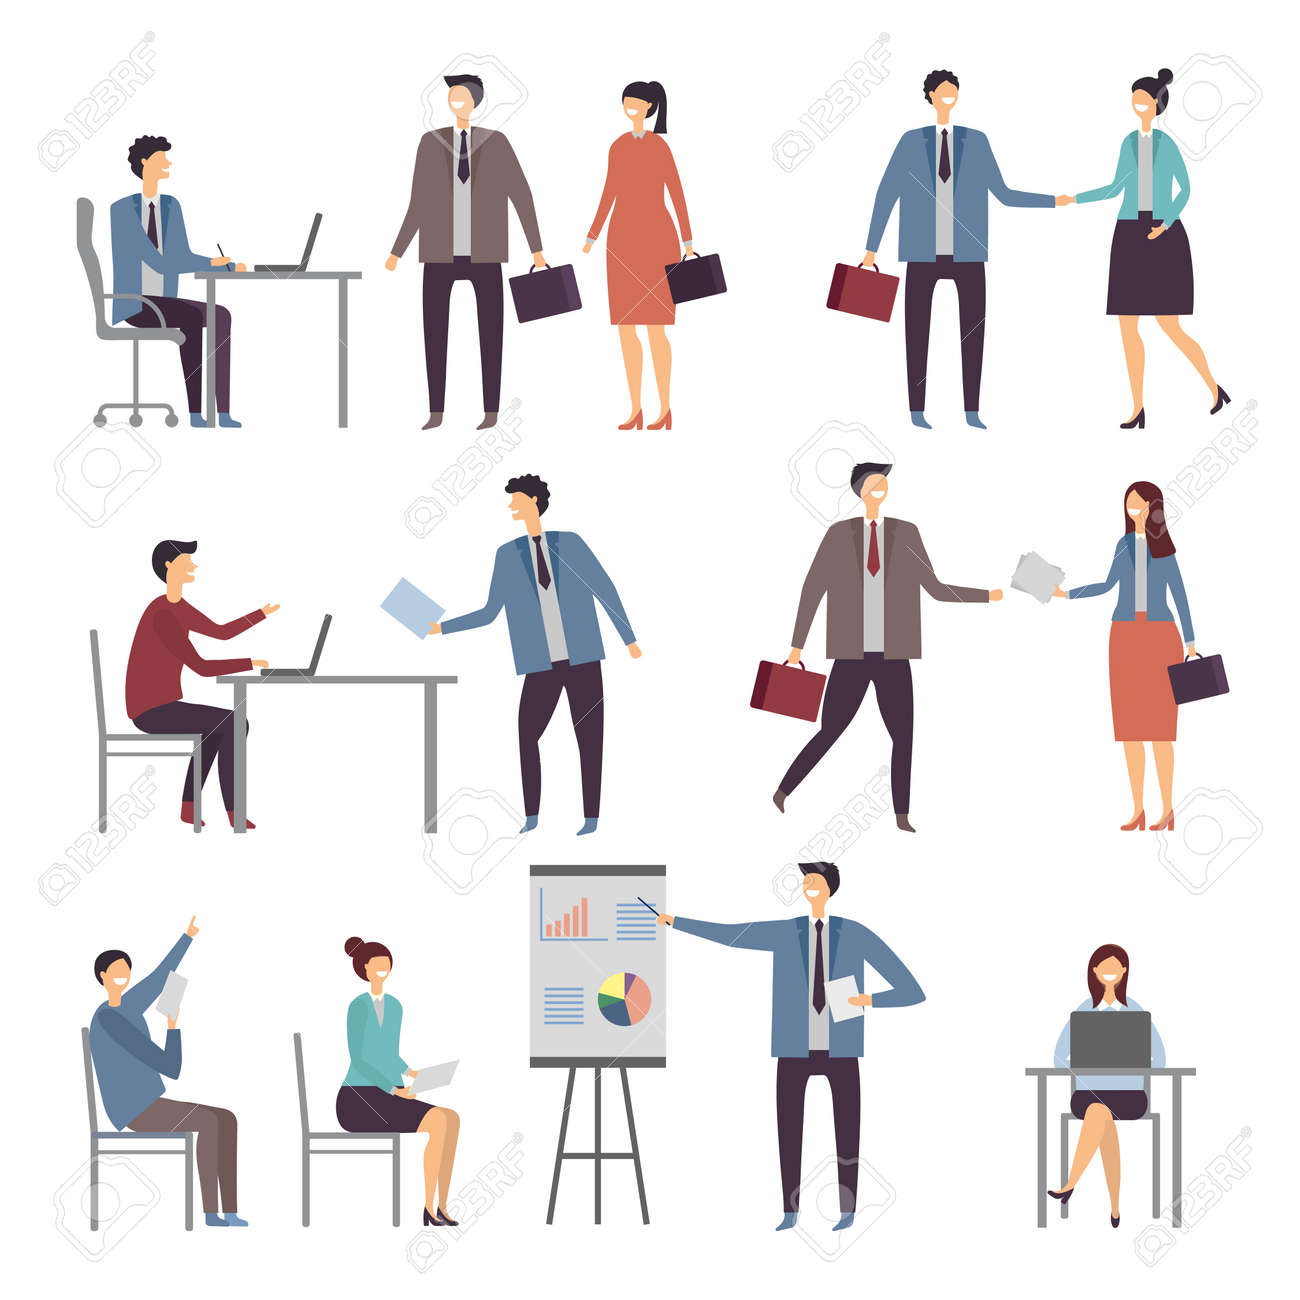 Various scene of active business people in office. Dialogues businessman and worker, person communication illustration - 166849504